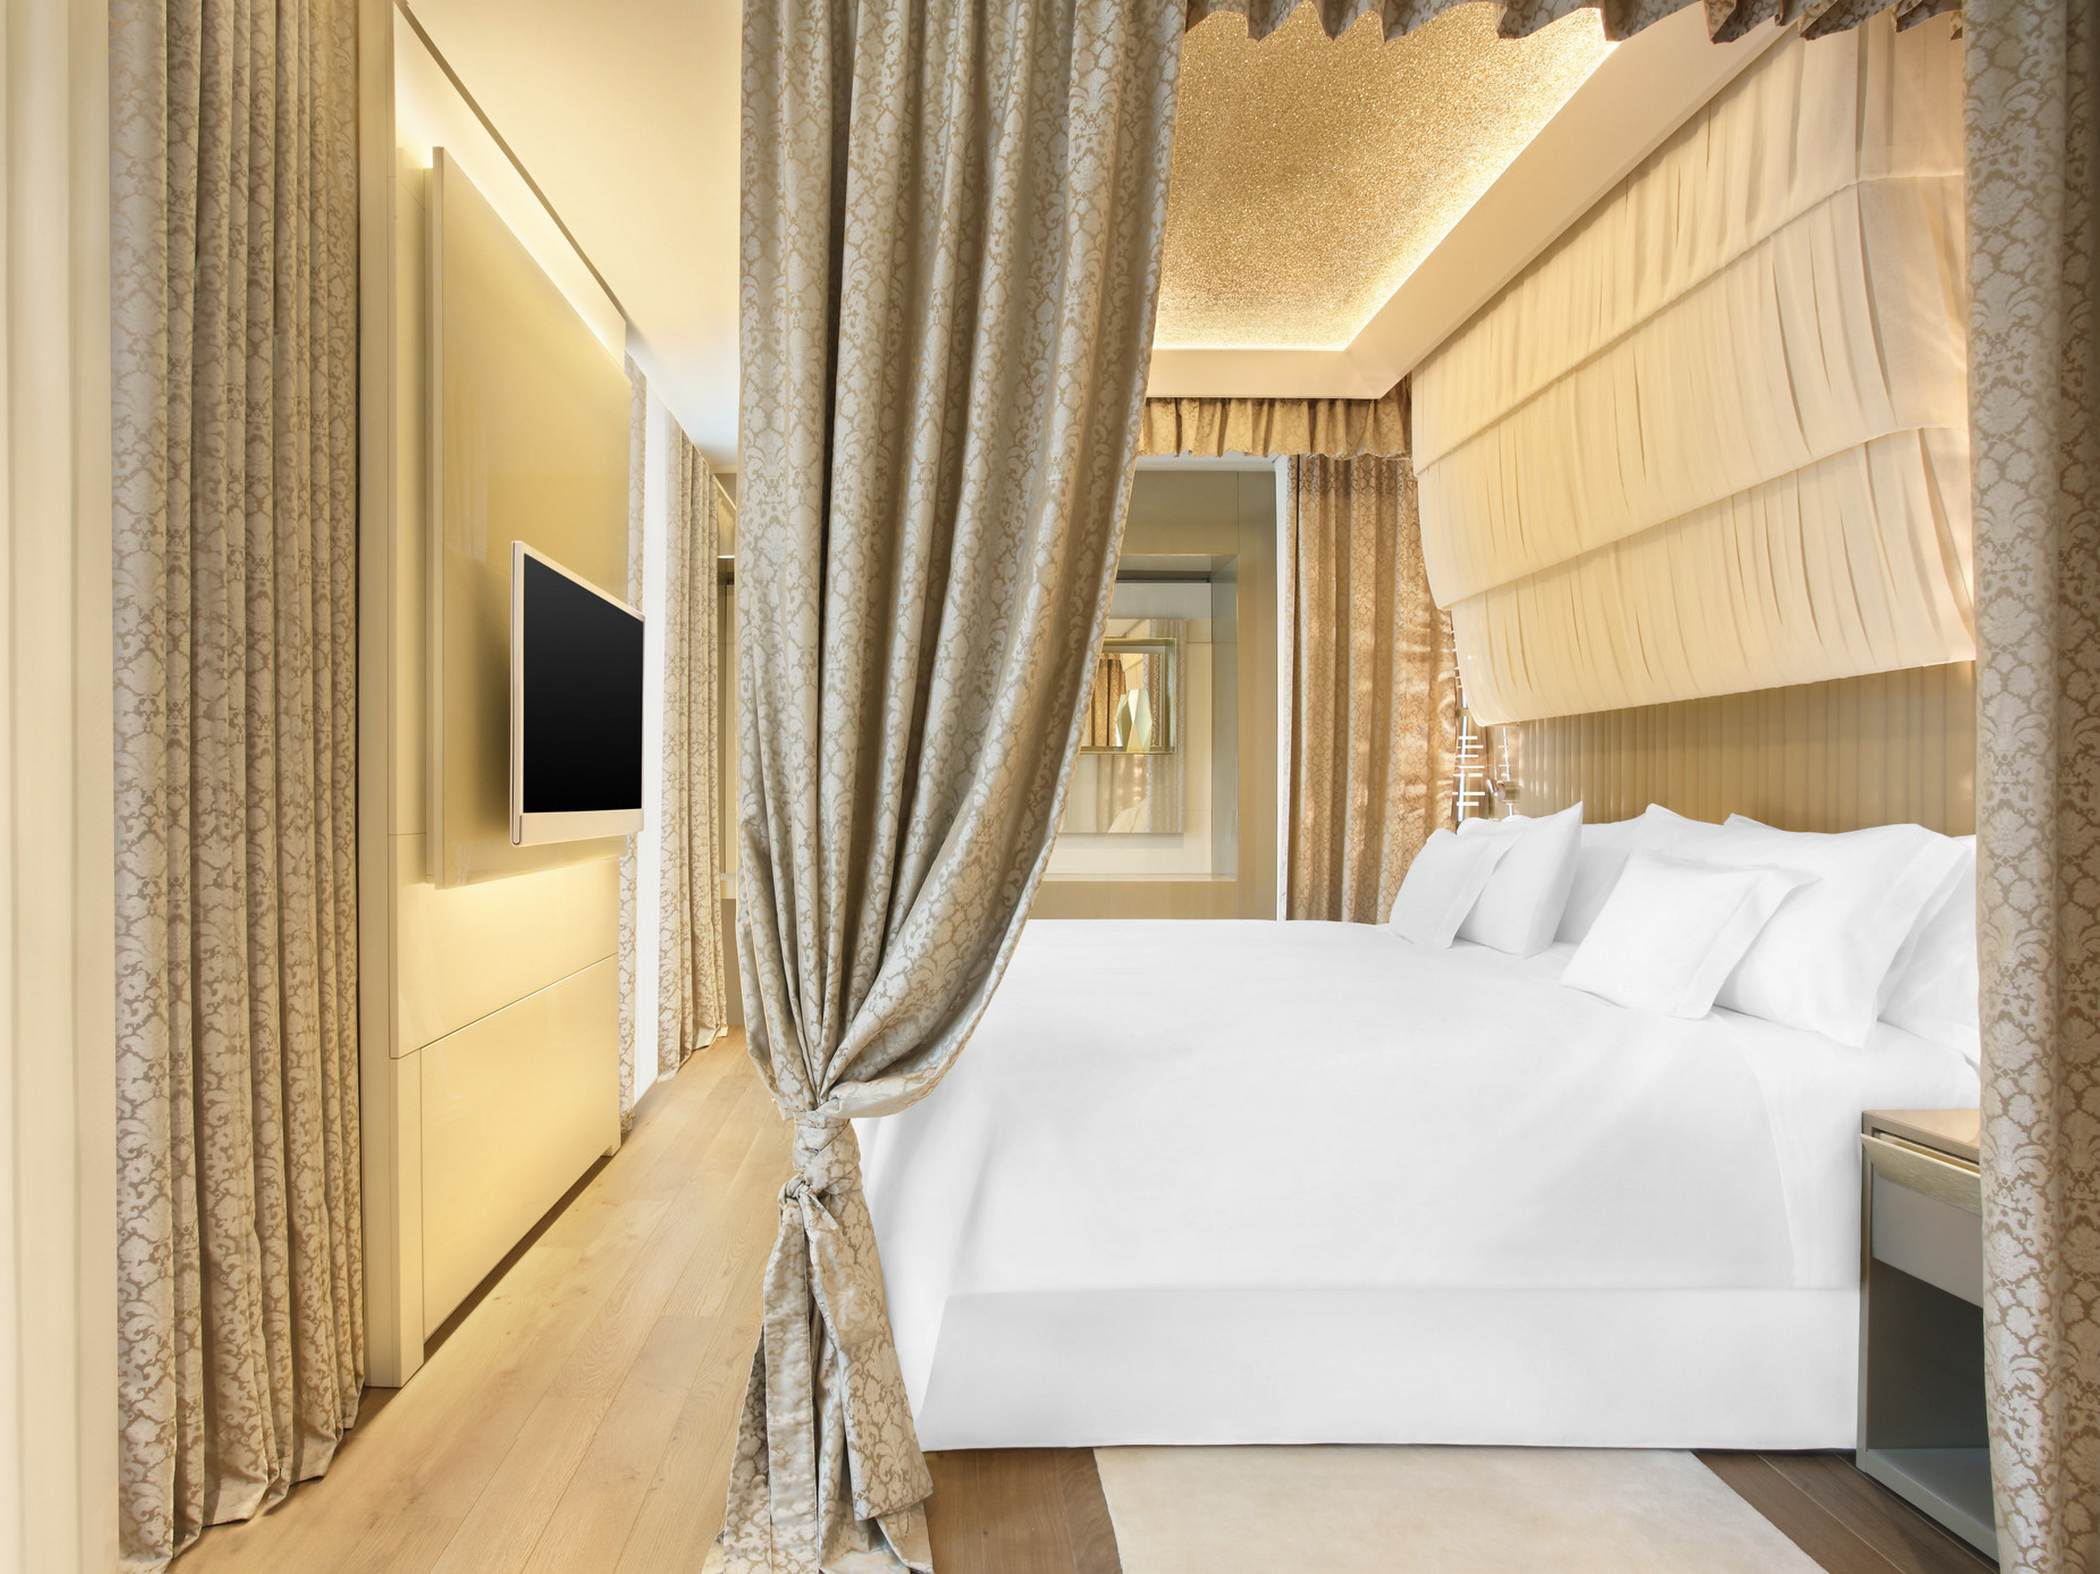 excelsior-hotel-gallia-gallia-suite-bed-room